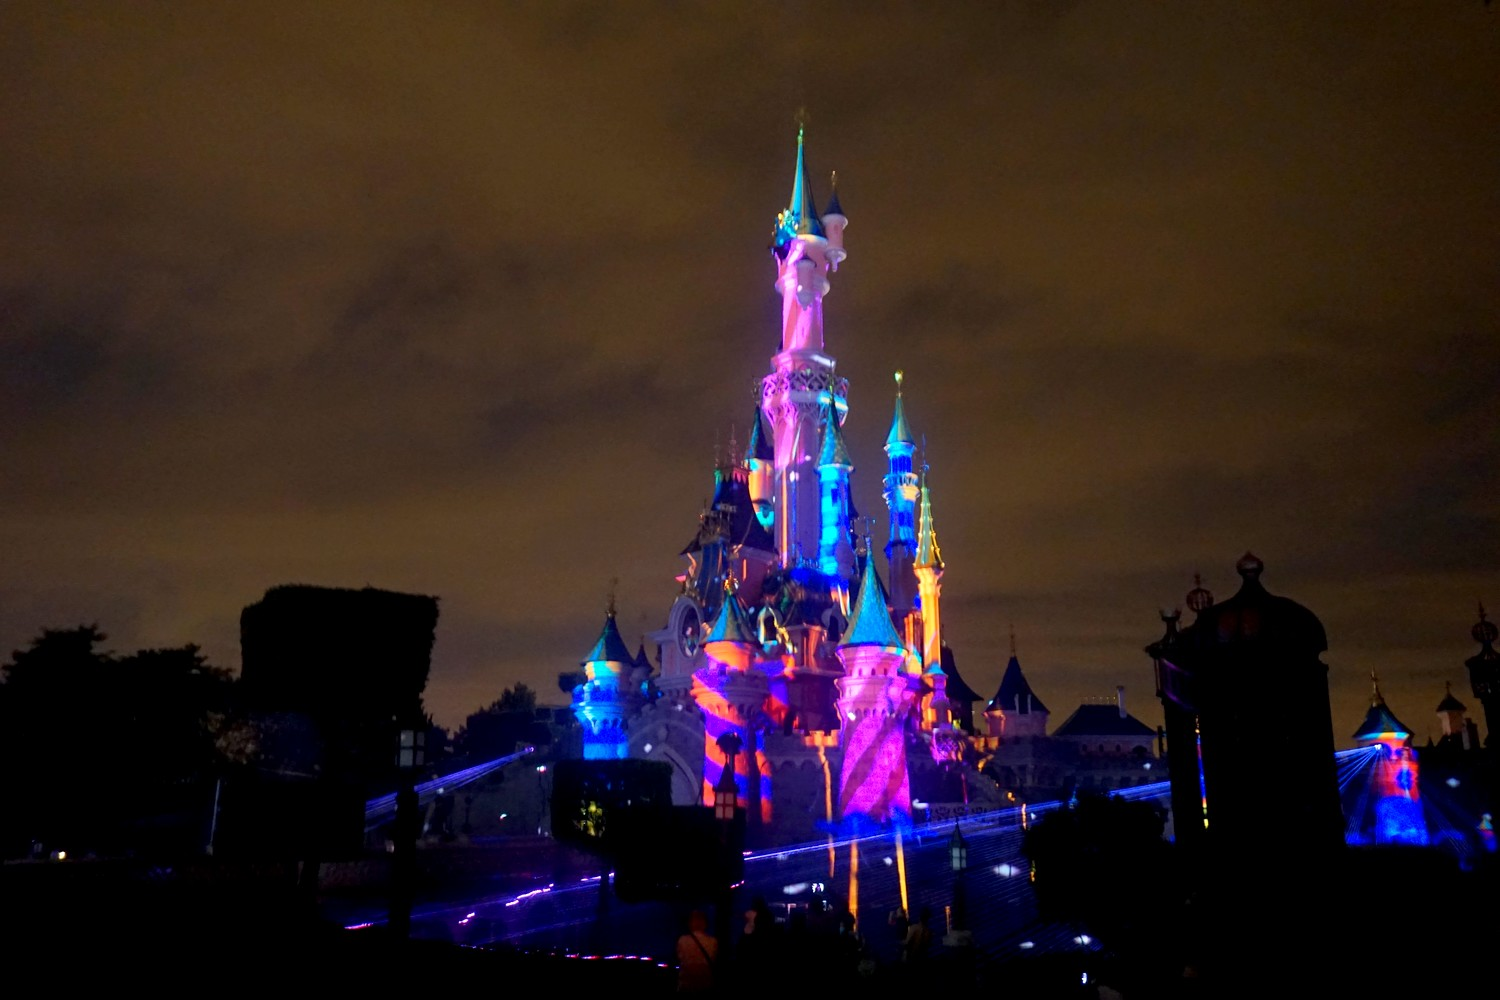 2 jours à disneyland paris parc attraction blog voyage découverte spectacle nocturne disney dreams